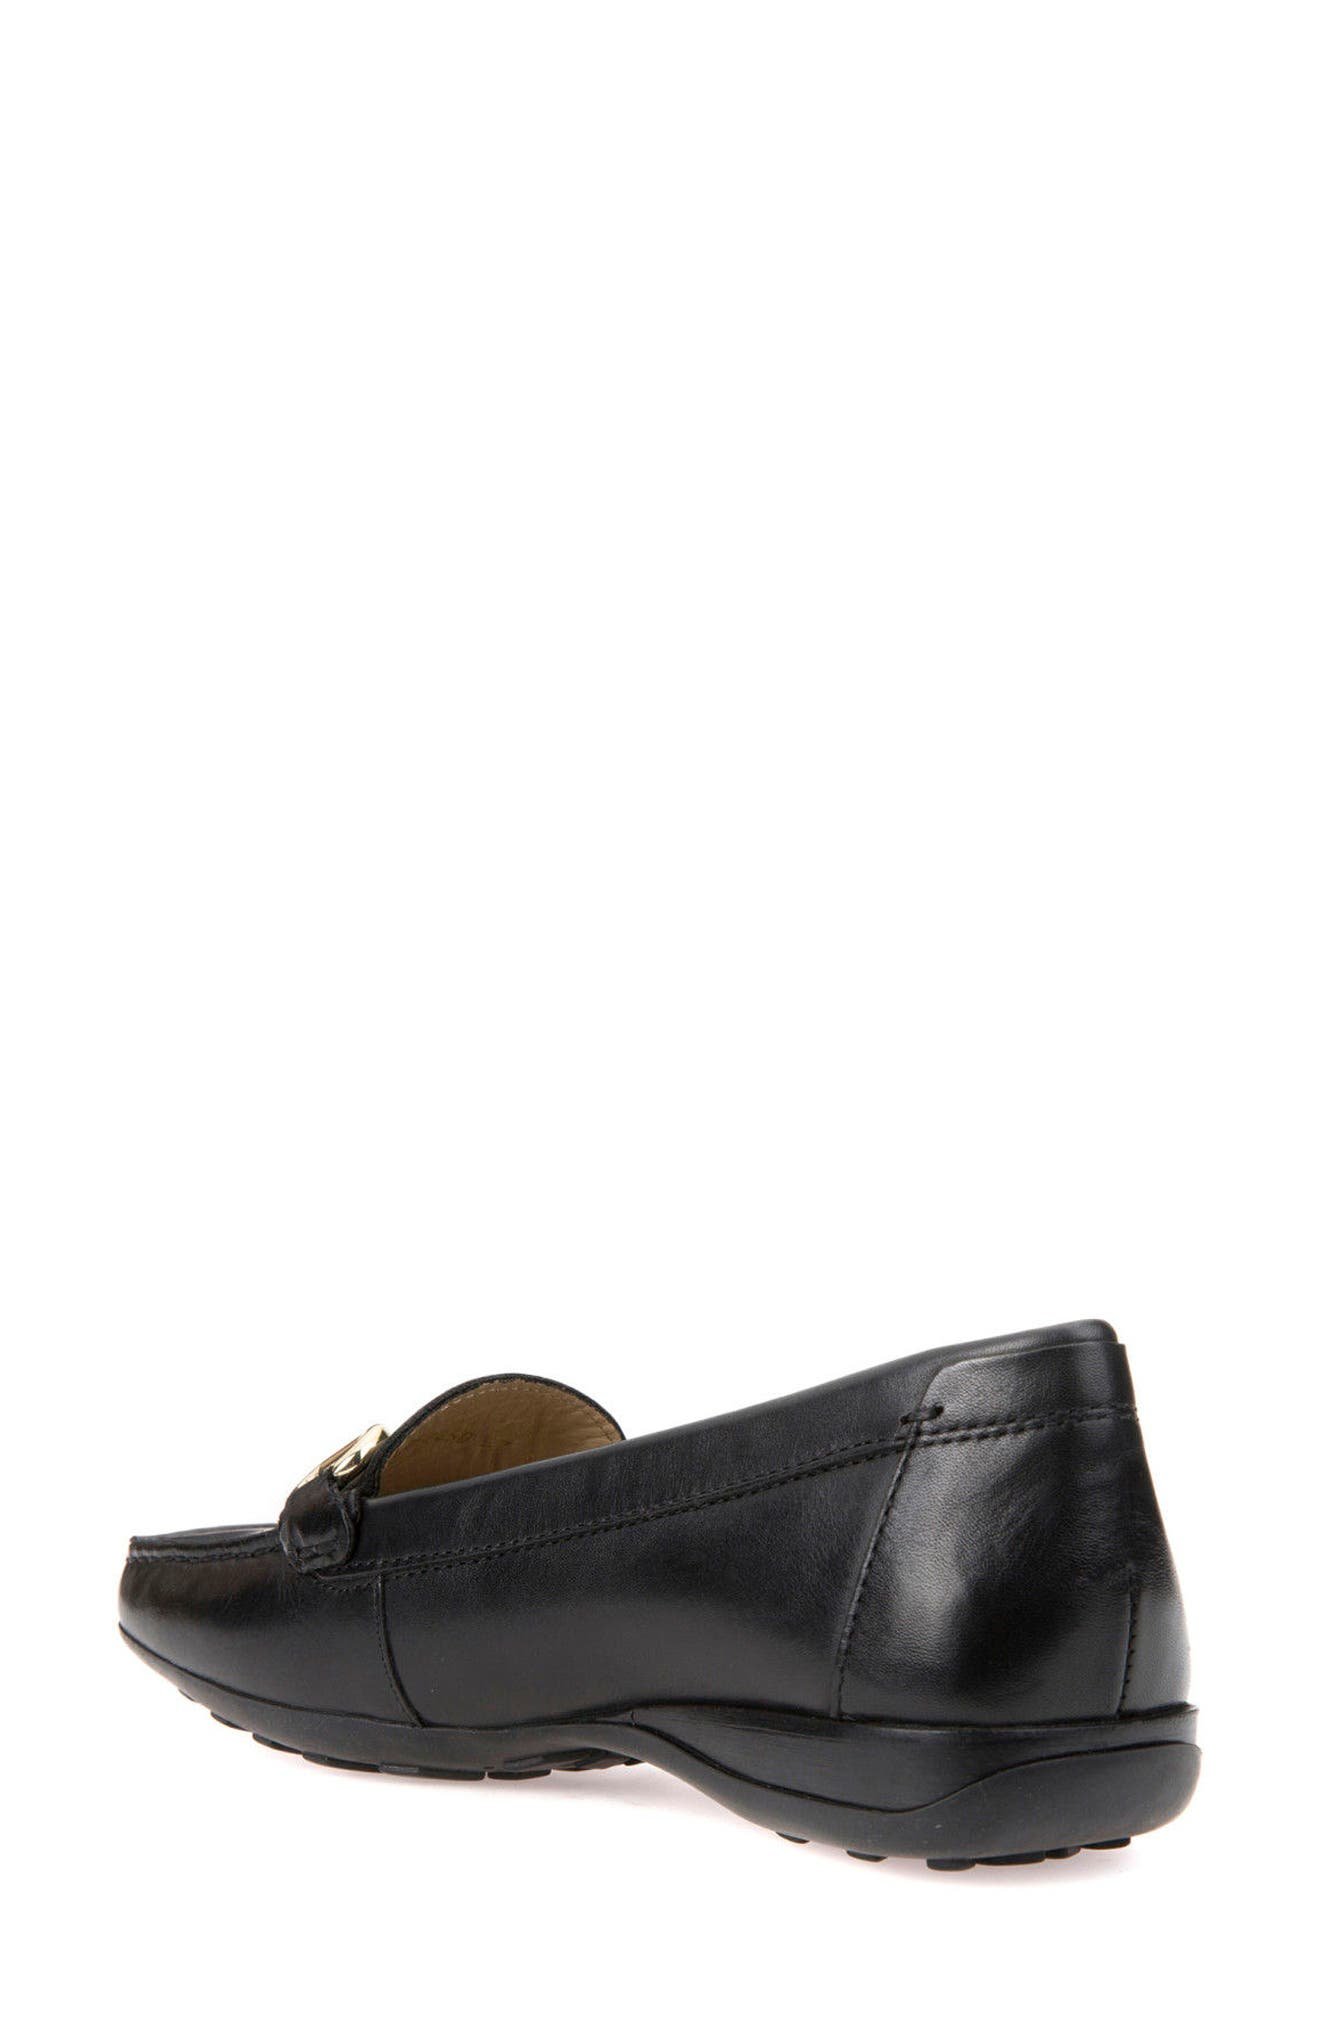 Euro 67 Loafer,                             Alternate thumbnail 10, color,